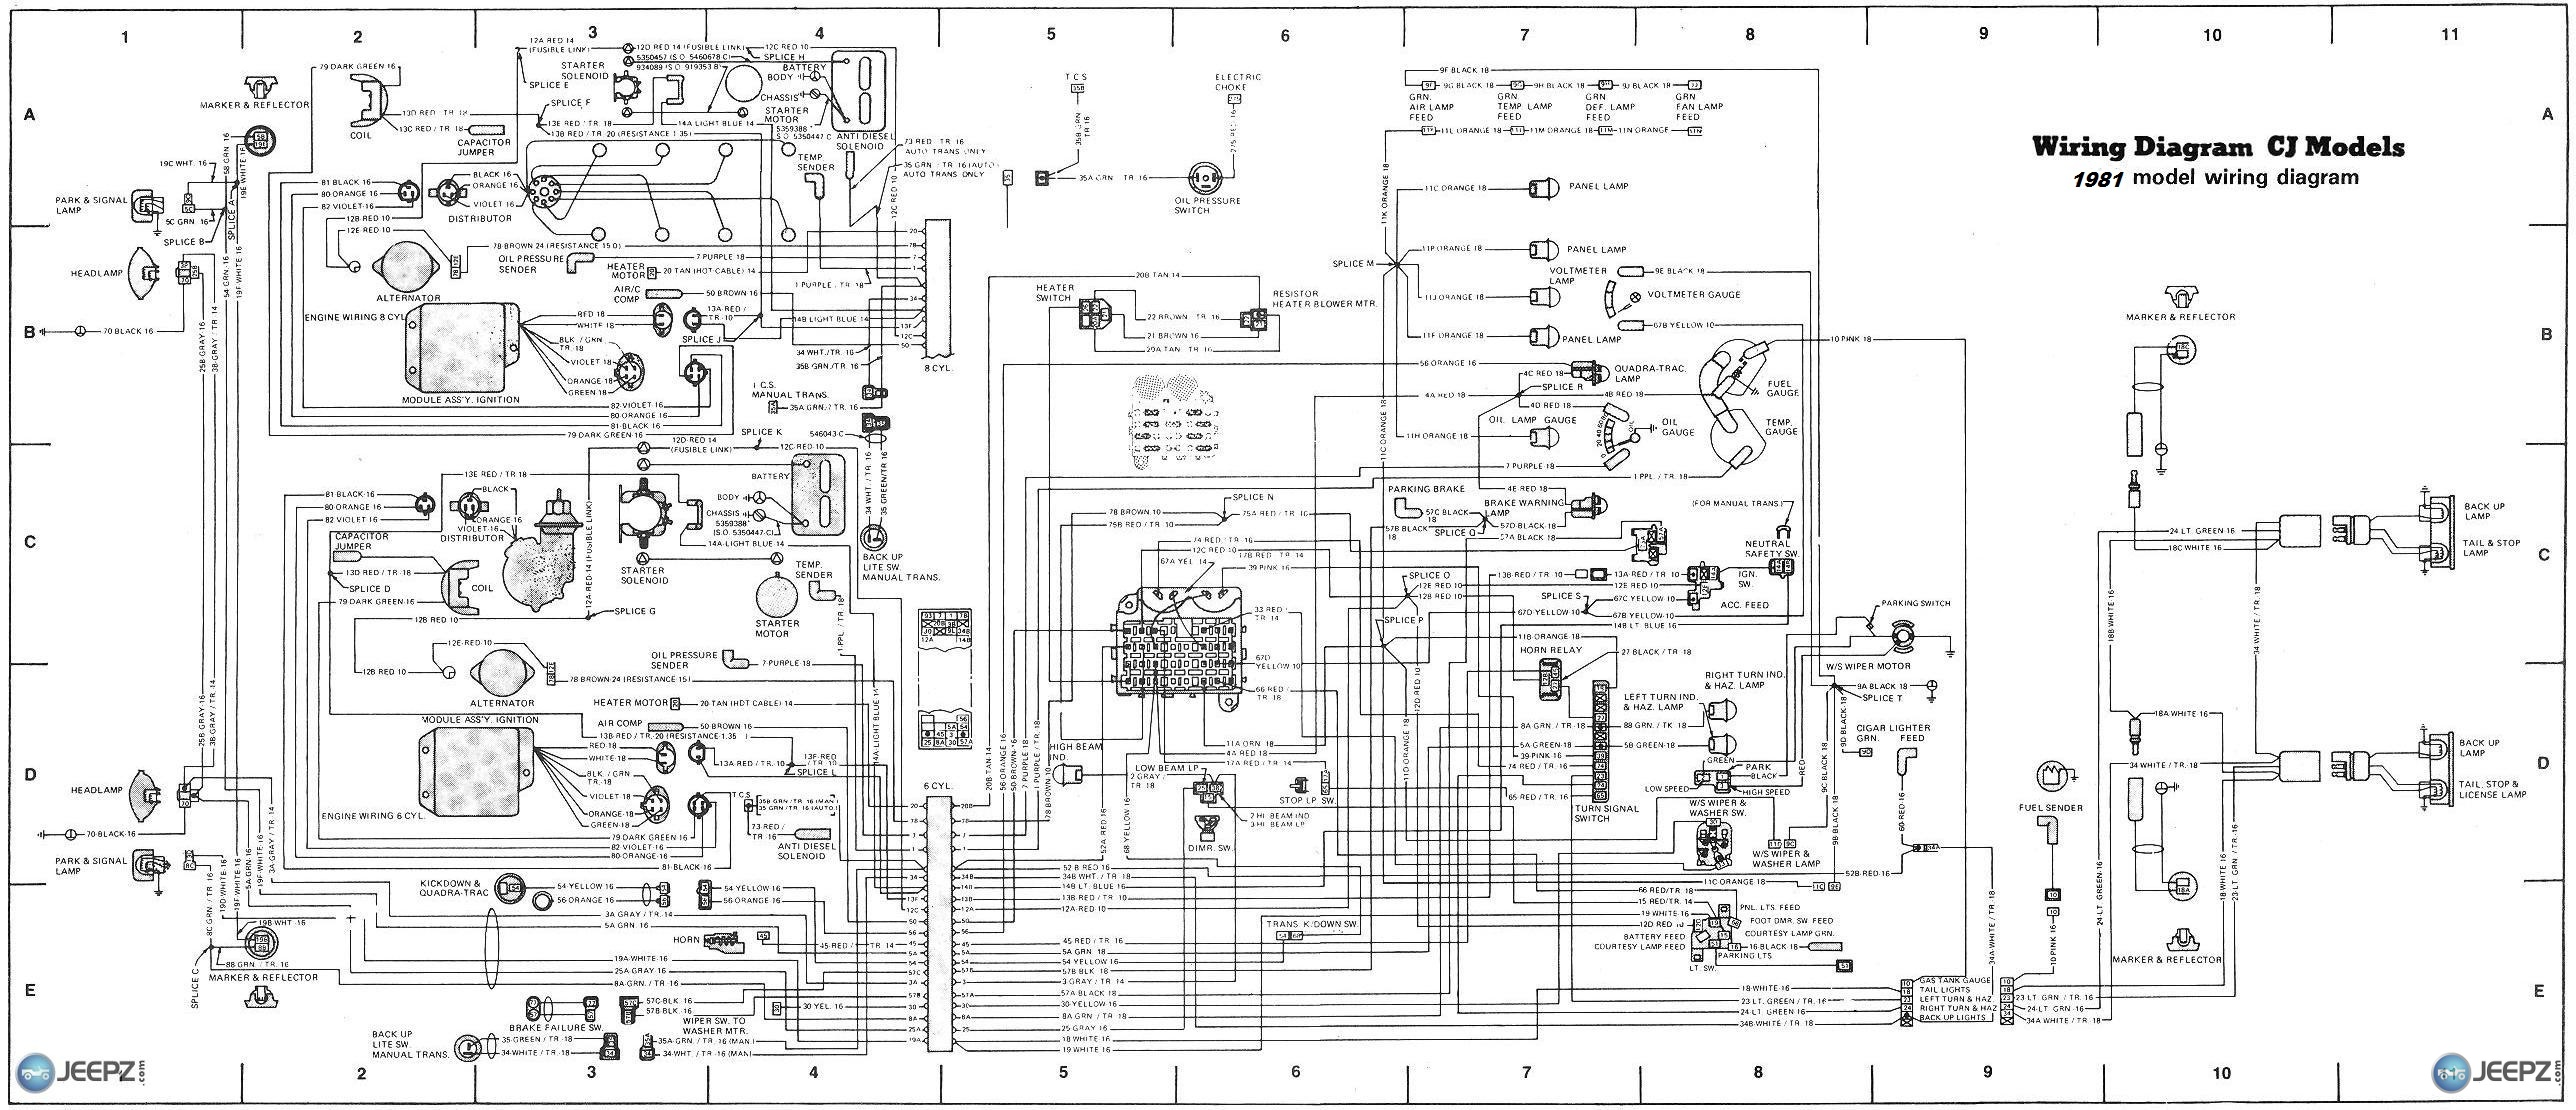 7993d1301845049 cj 7 wire diagram cj wiring diagram 1981 cj 7 wire diagram jeep cj7 wiring diagram at edmiracle.co